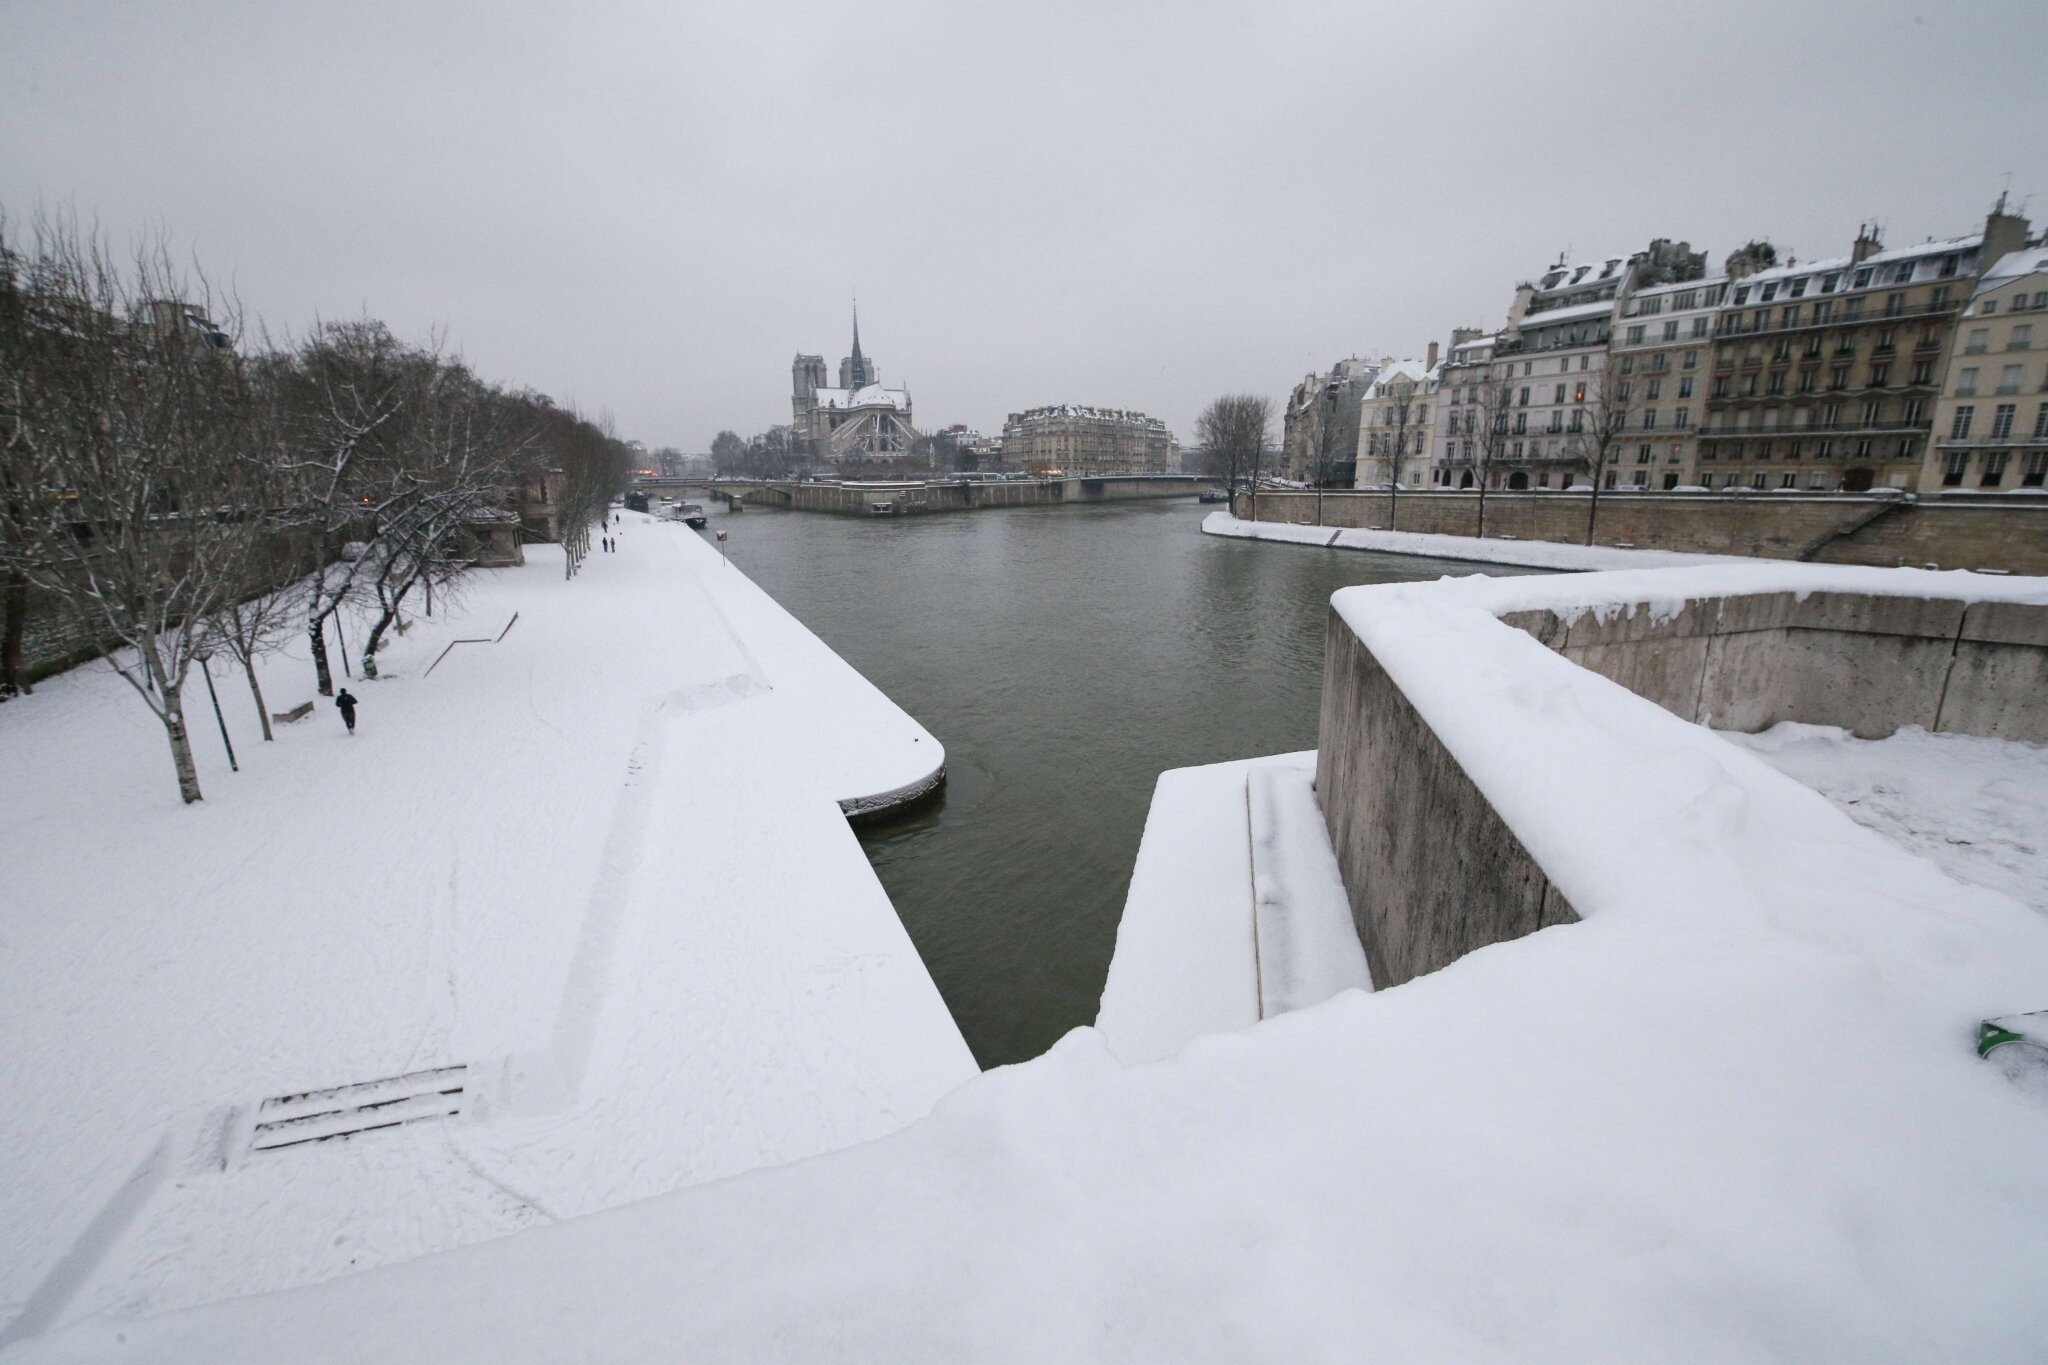 Paris sous la neige. © Photo Michel Stoupak. Sam 19.01.2013, 09:43.